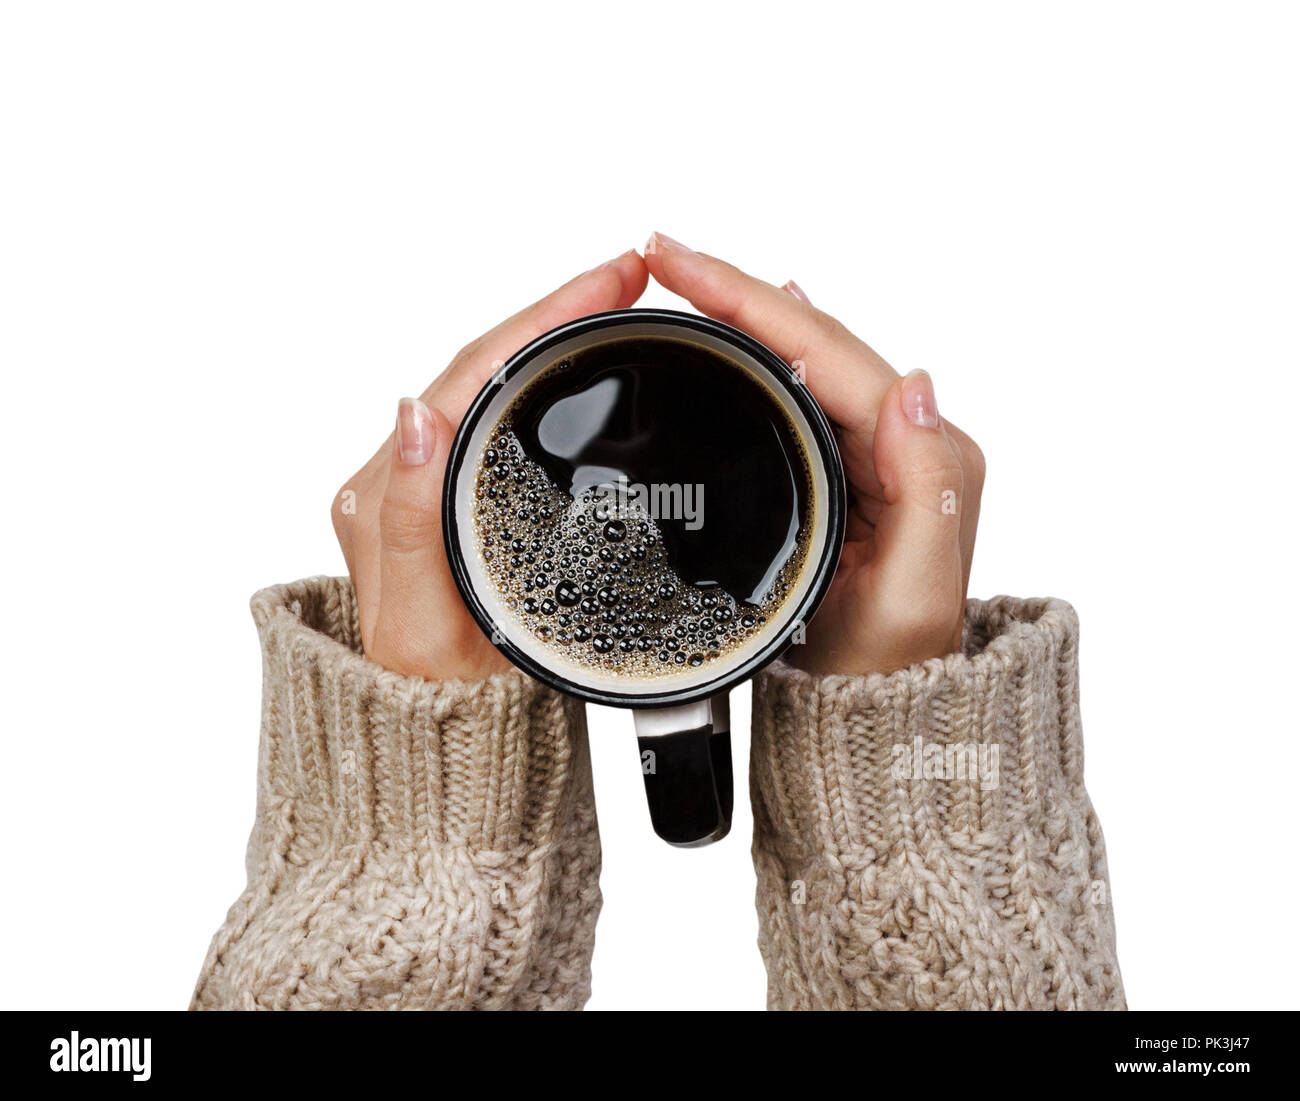 Woman holding cup of hot coffee isolated on white, closeup photo of hands in warm sweater with mug, winter morning concept, top view. - Stock Image